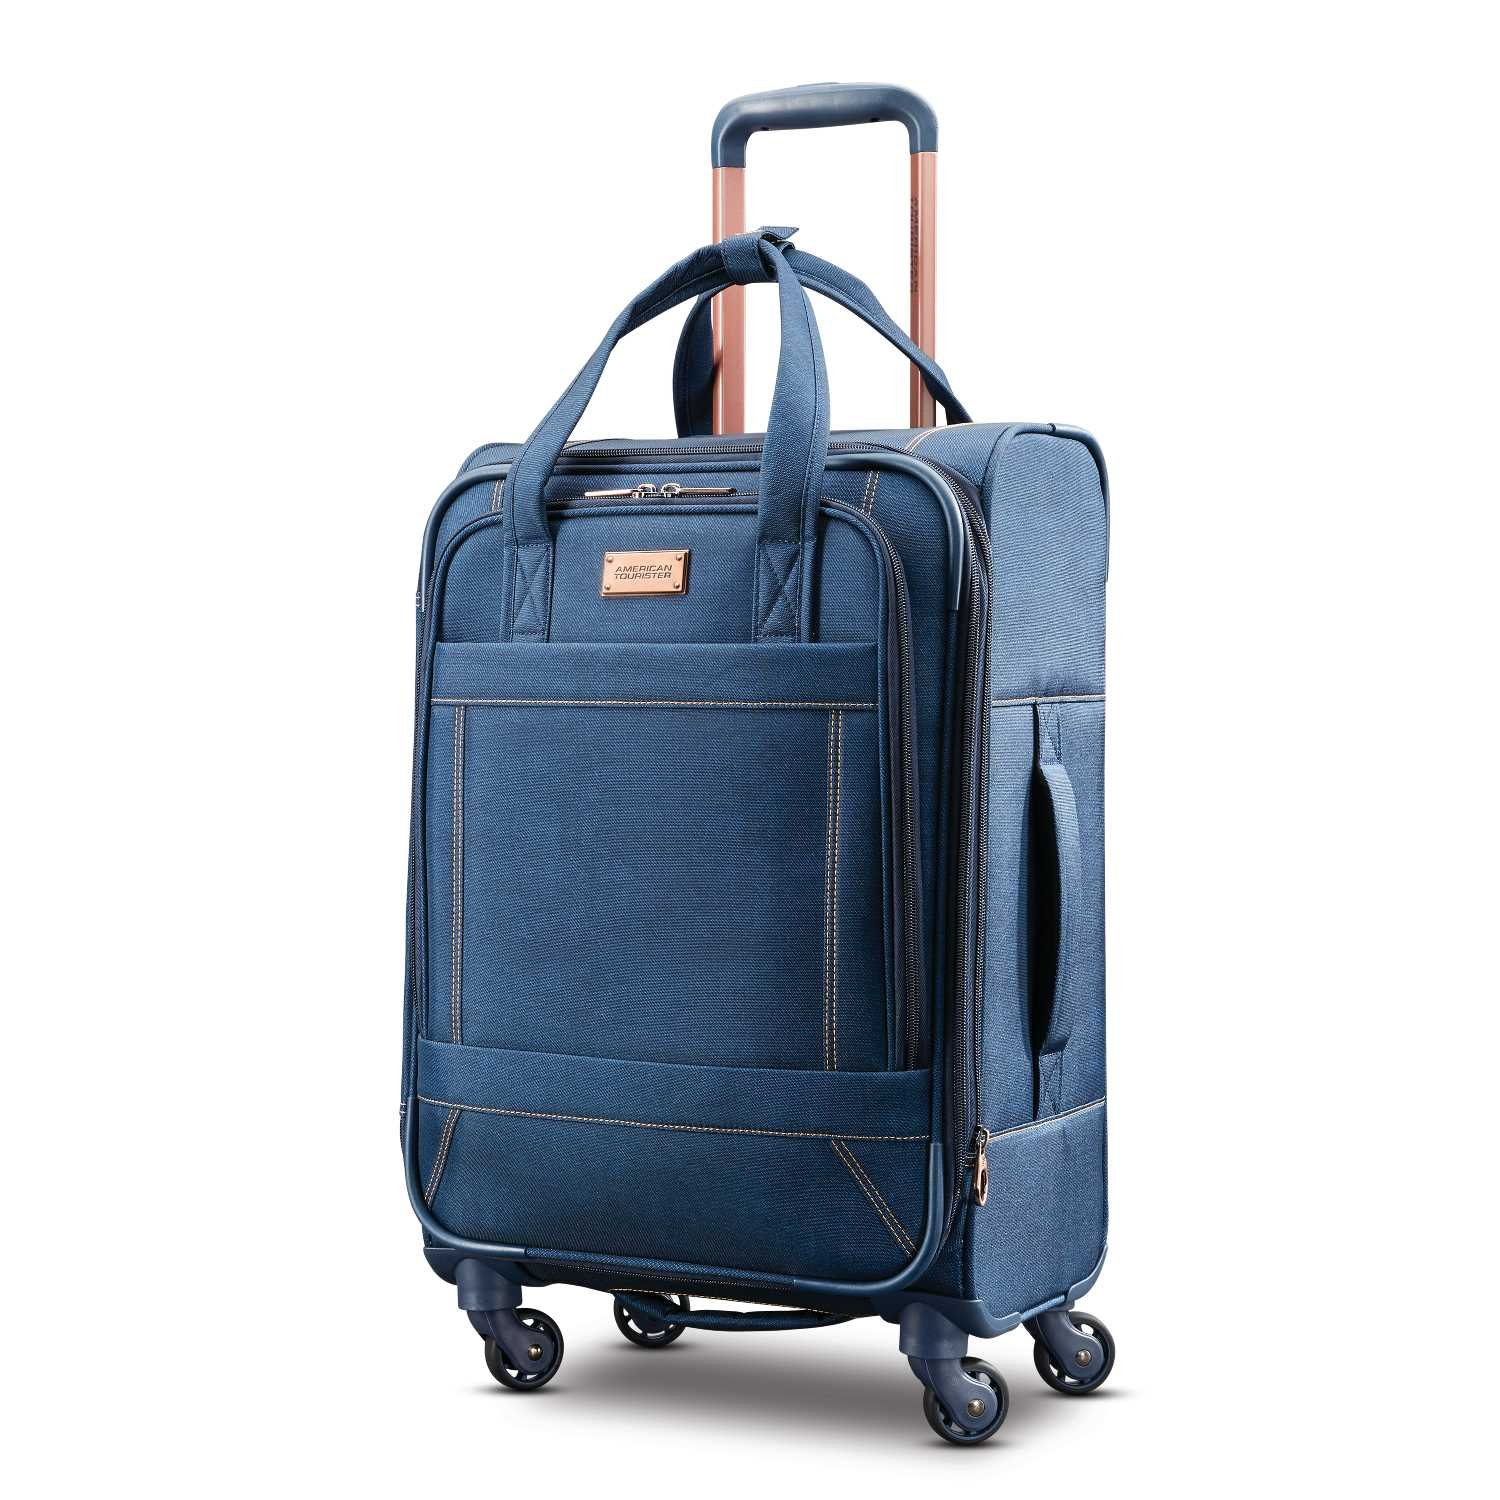 American Tourister Voyage Spinner Luggage